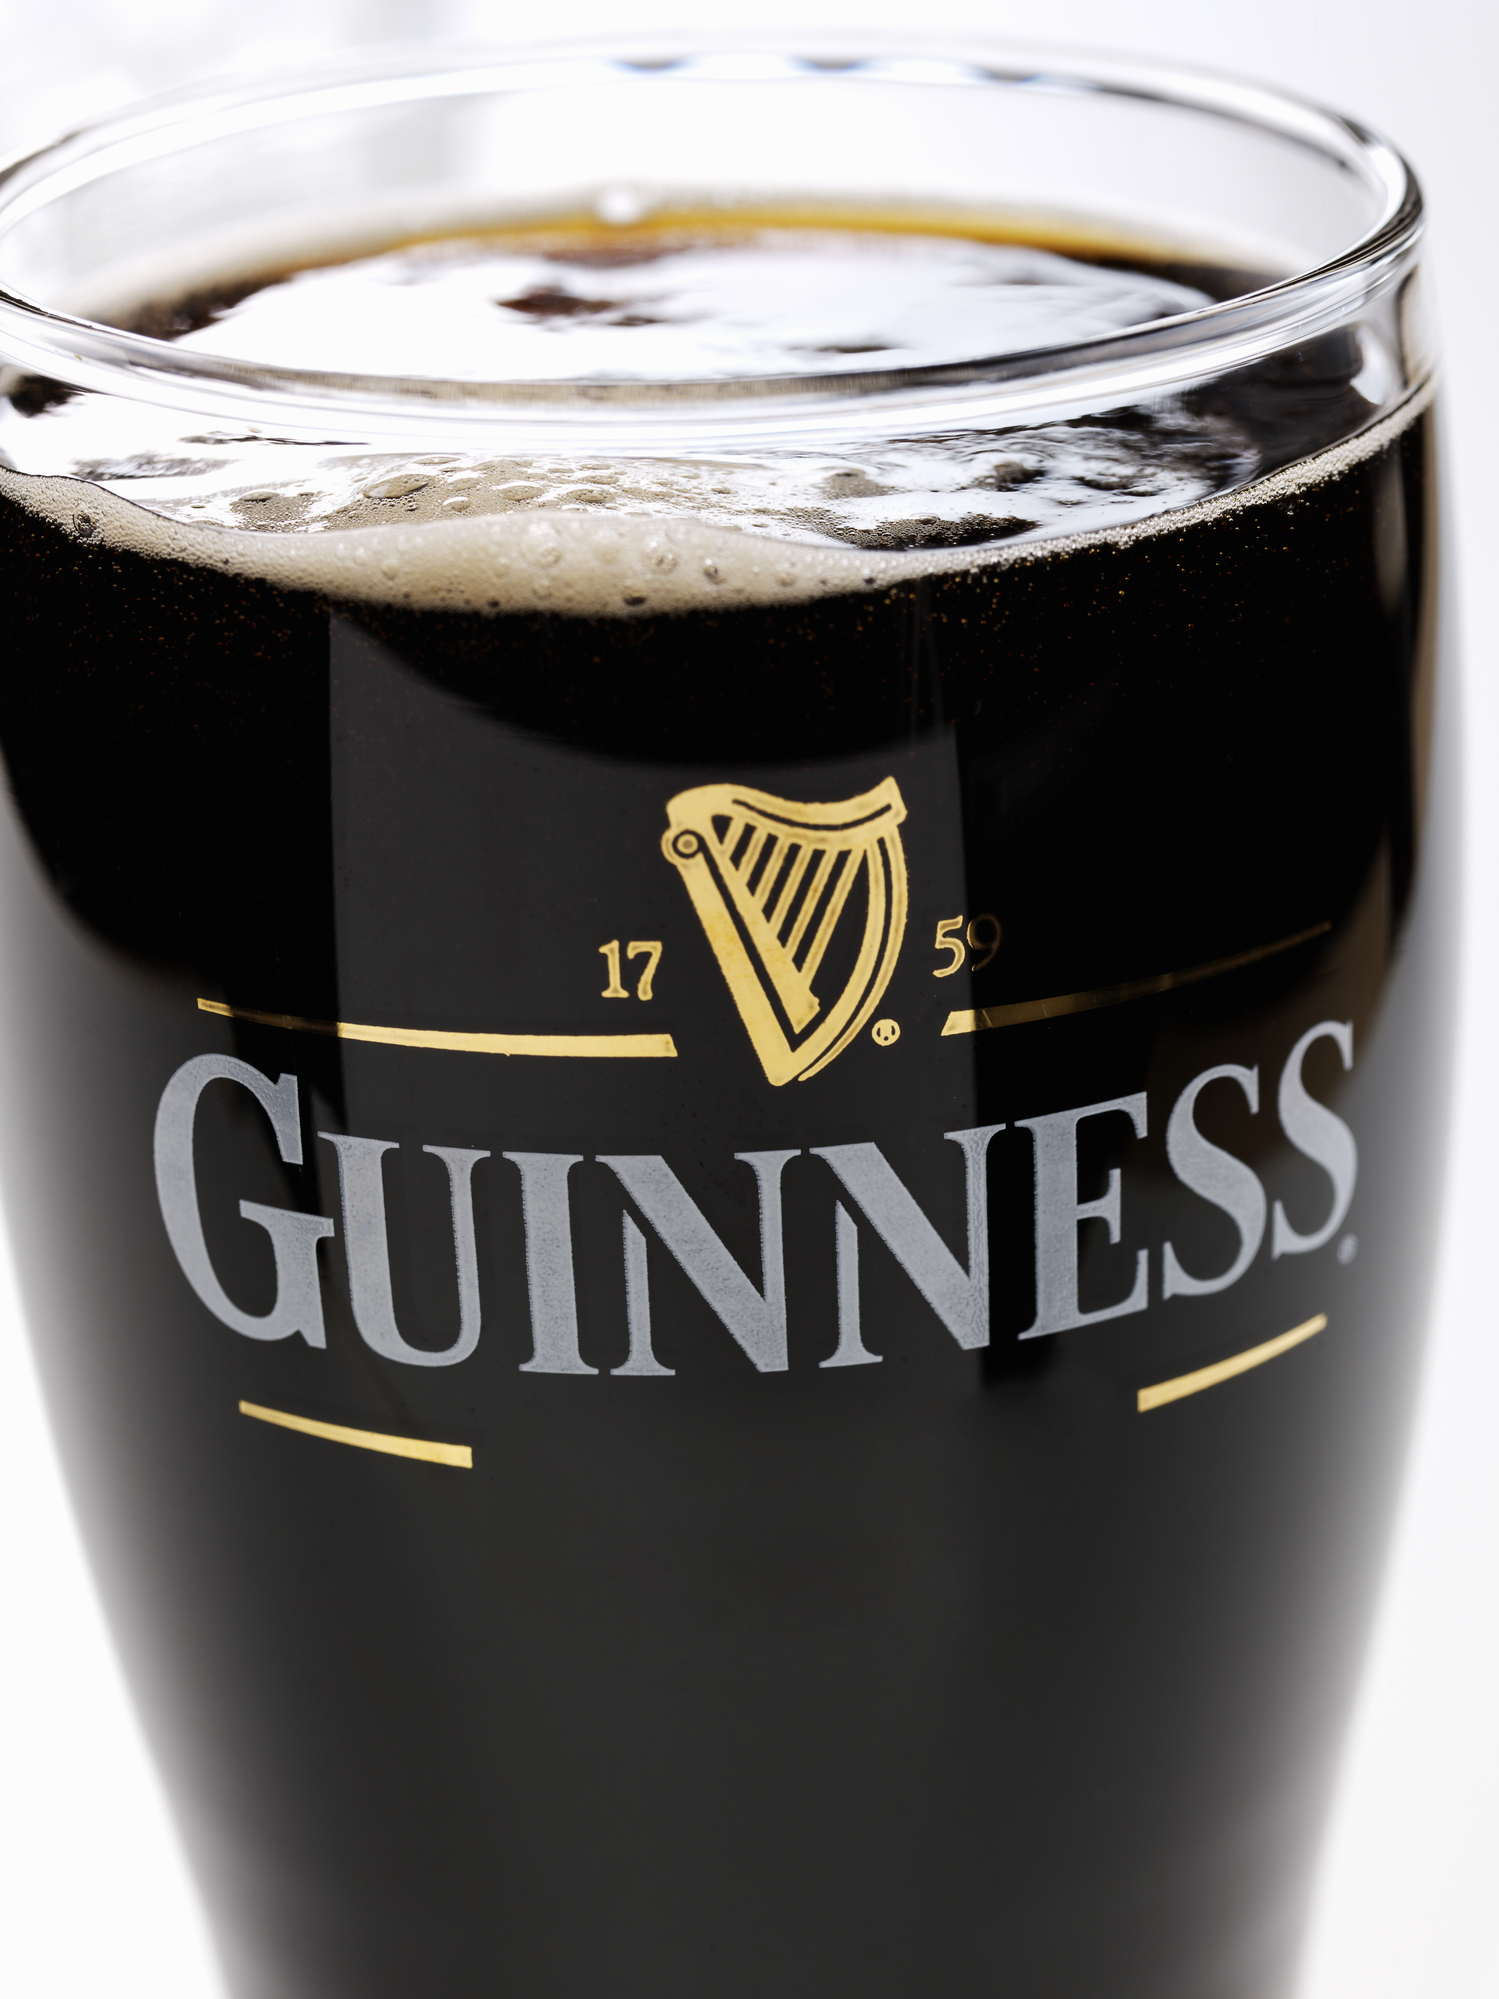 Guinness recently opened a brewery in the U.S.